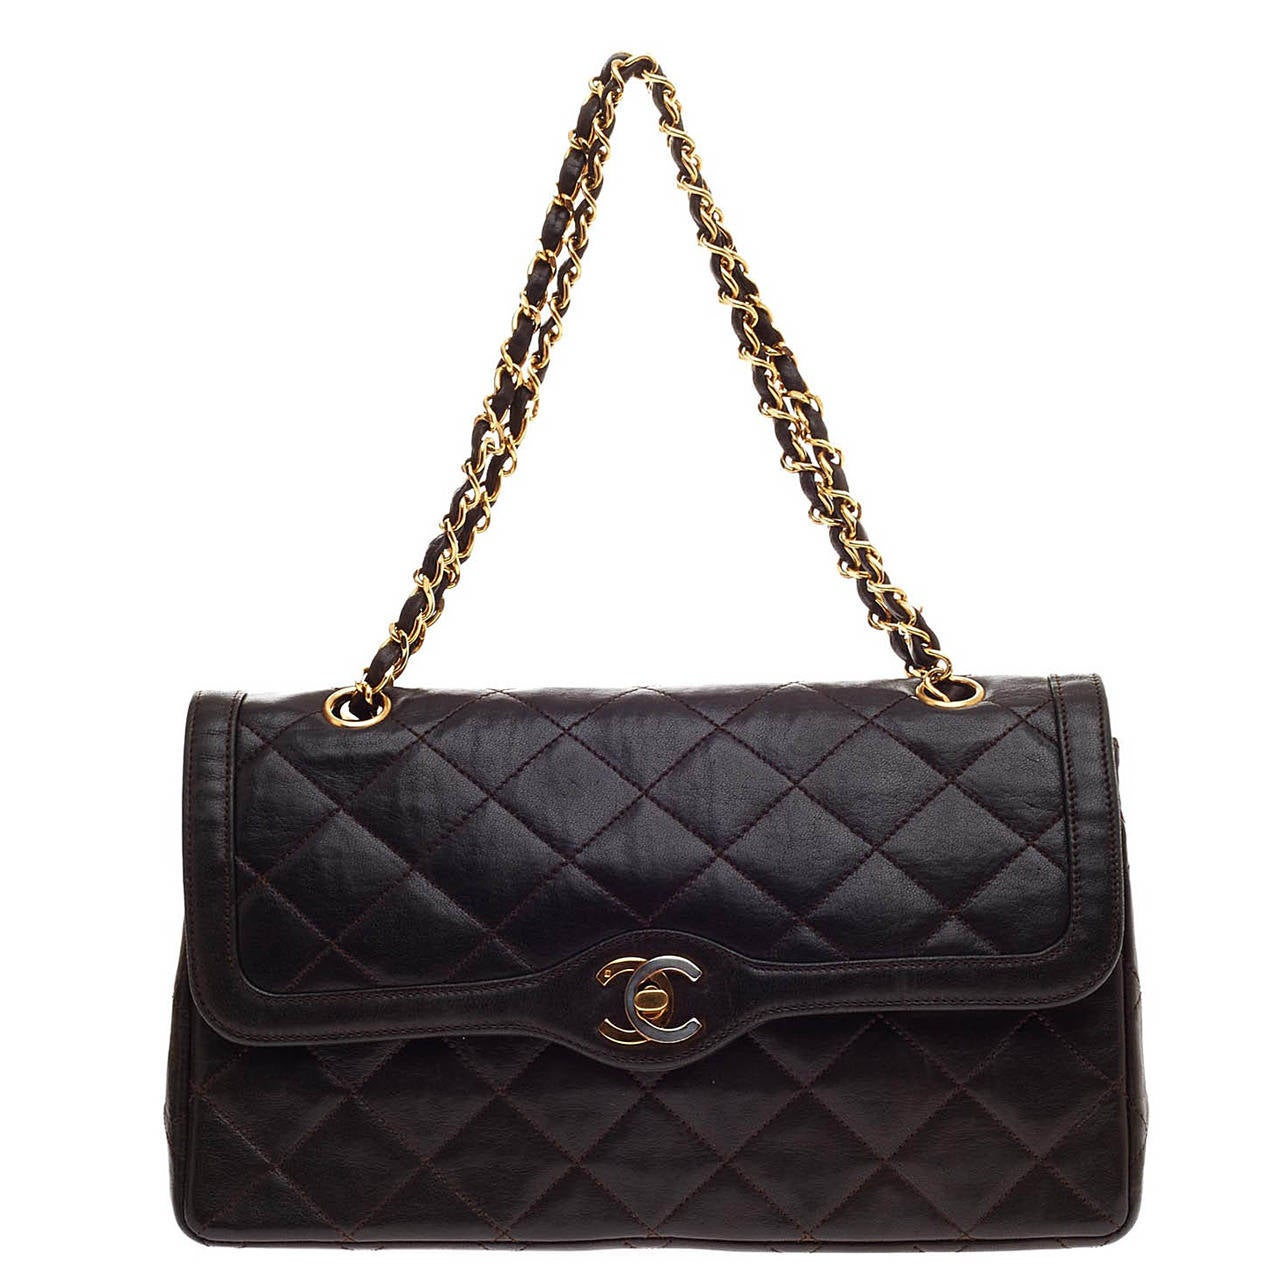 1b02fe88d59cf Chanel Vintage Flap Two Tone Hardware Quilted Lambskin Medium at 1stdibs